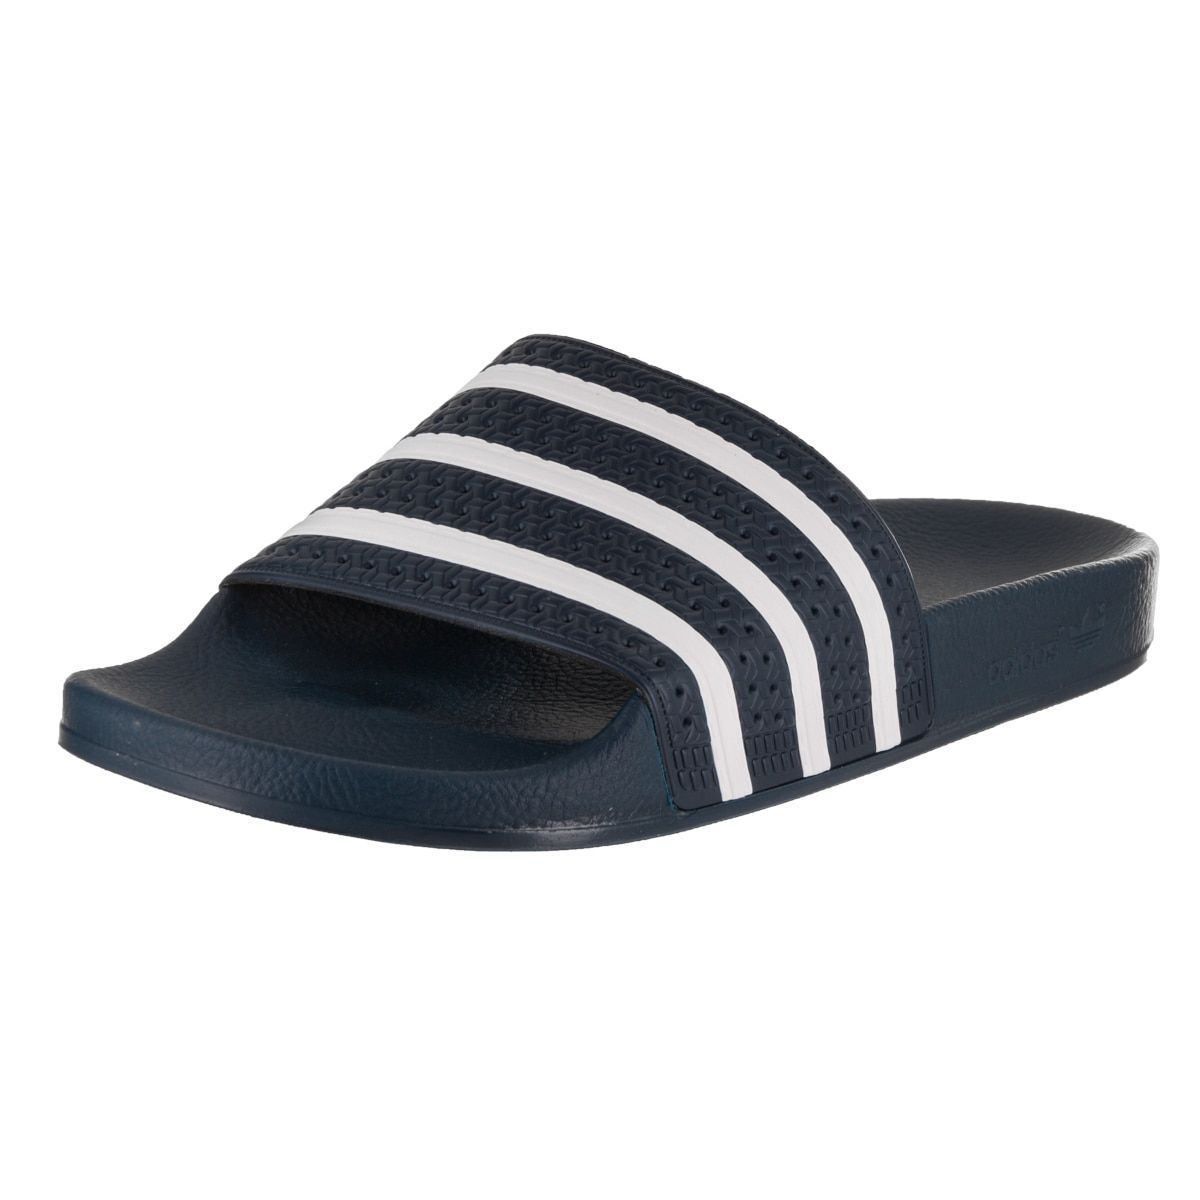 And Synthetic Sandal White Products Adidas Adilette Men's A1qnEH